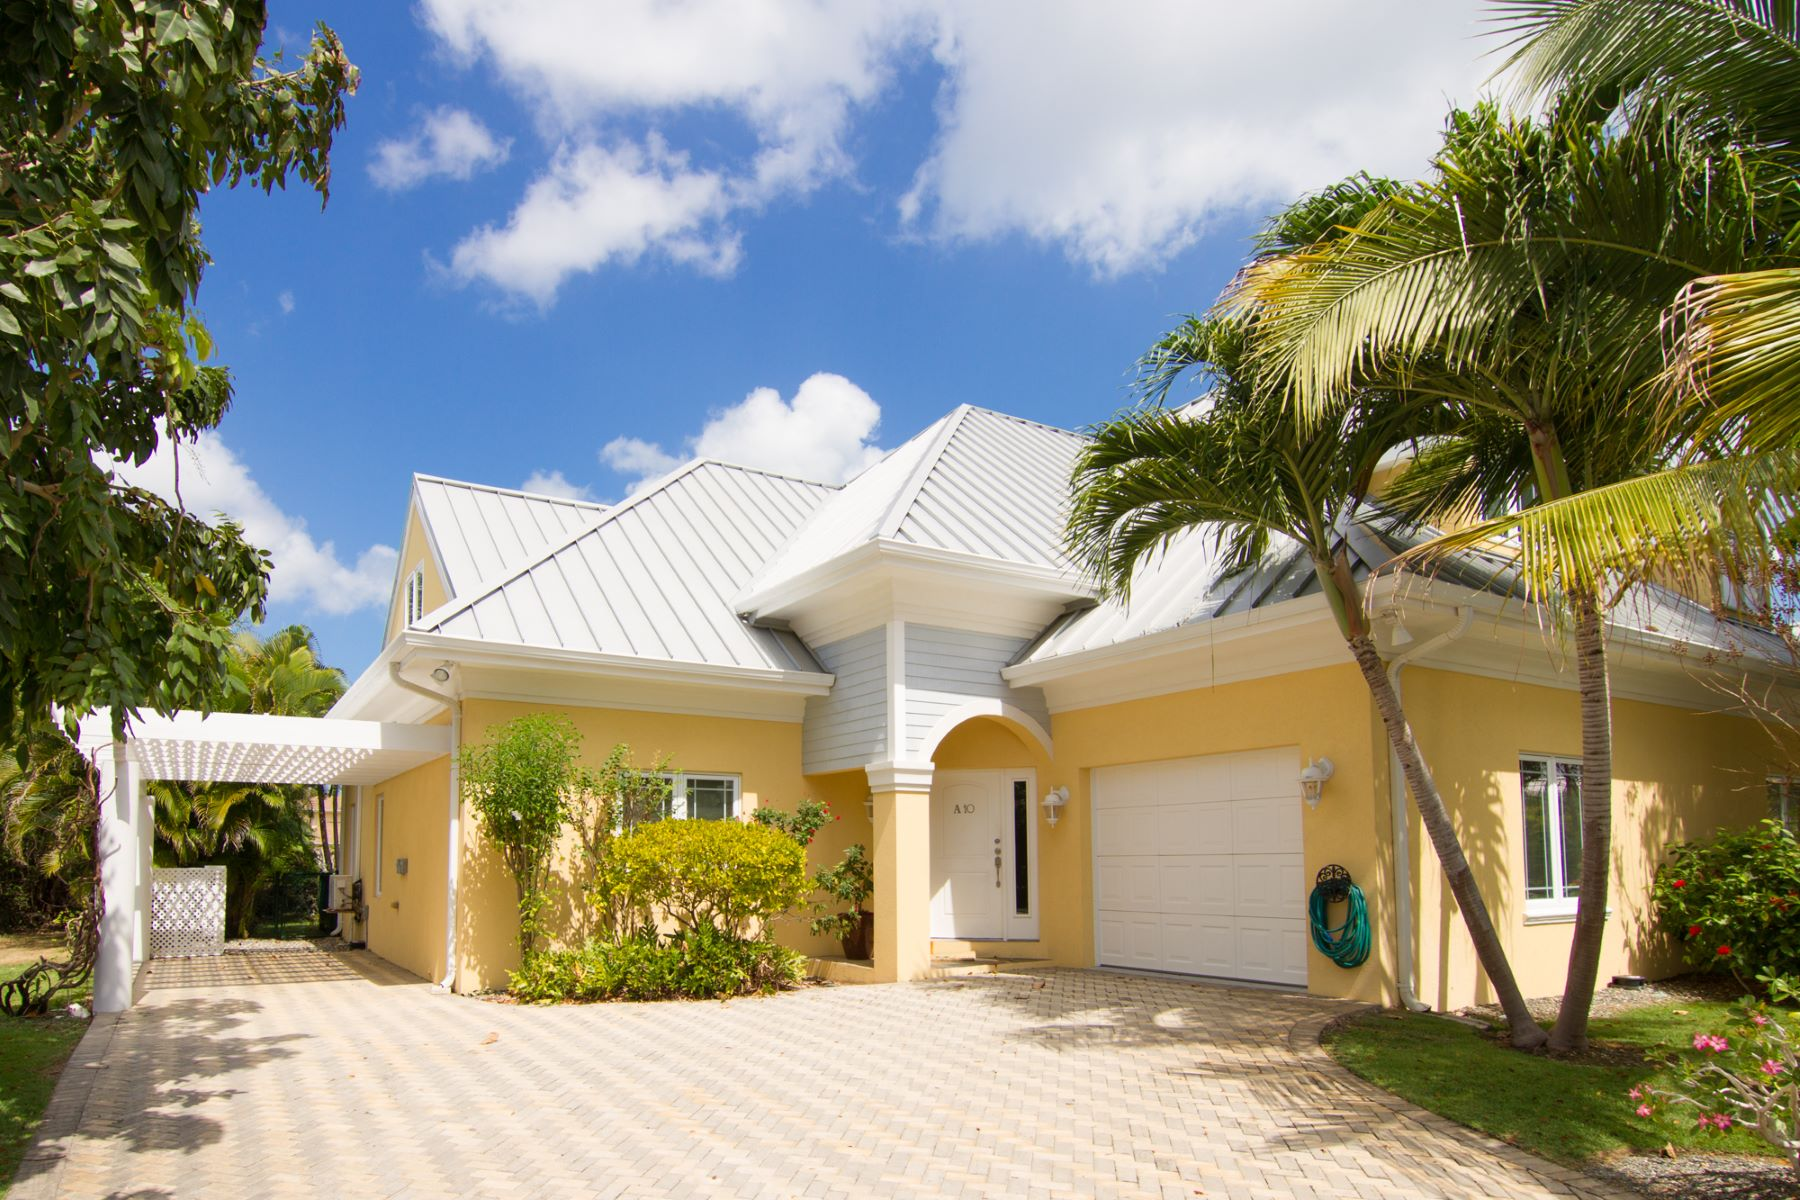 Single Family Home for Sale at Savannah Grand Family Home Other Cayman Islands, Cayman Islands